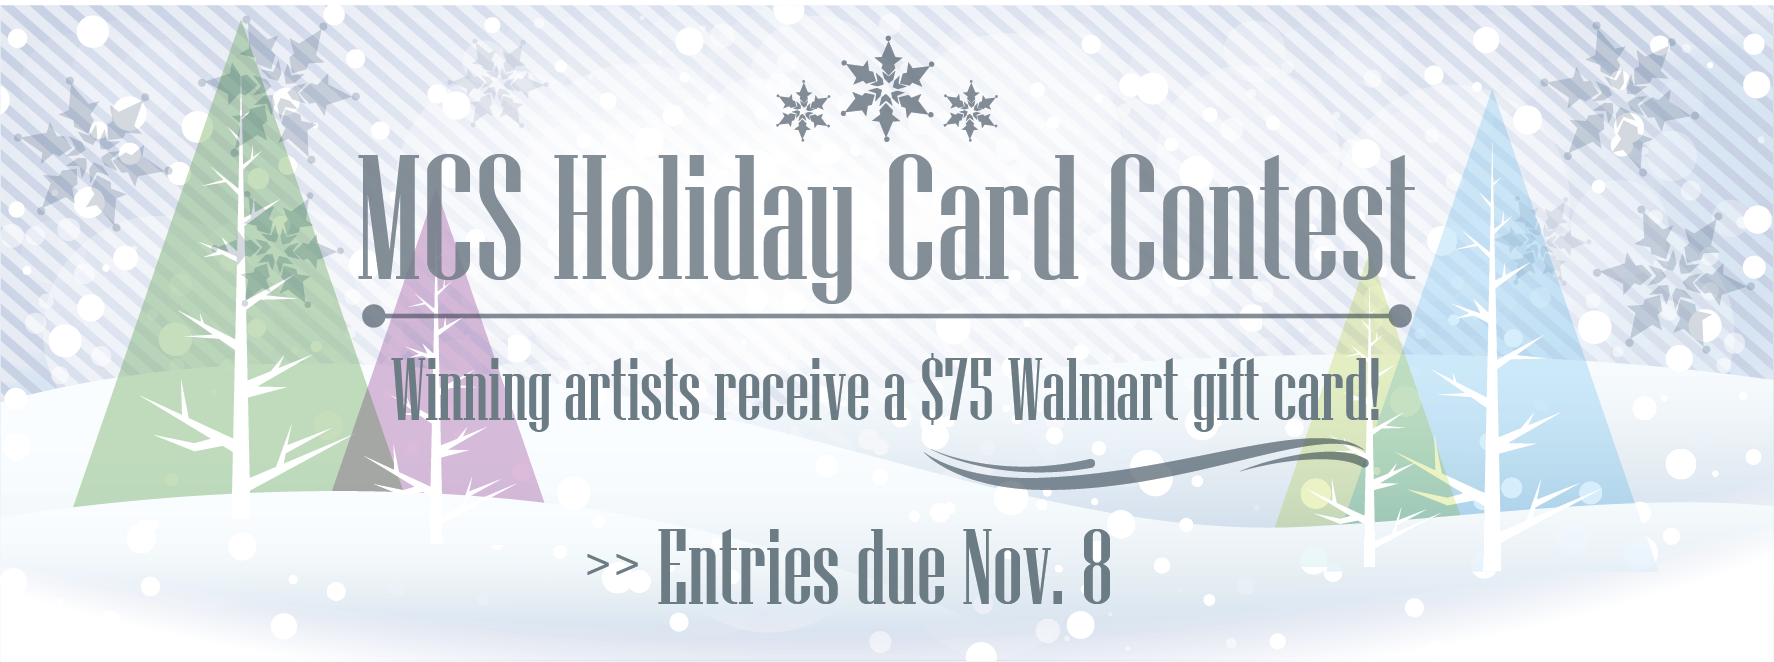 MCS holiday card contest 2019